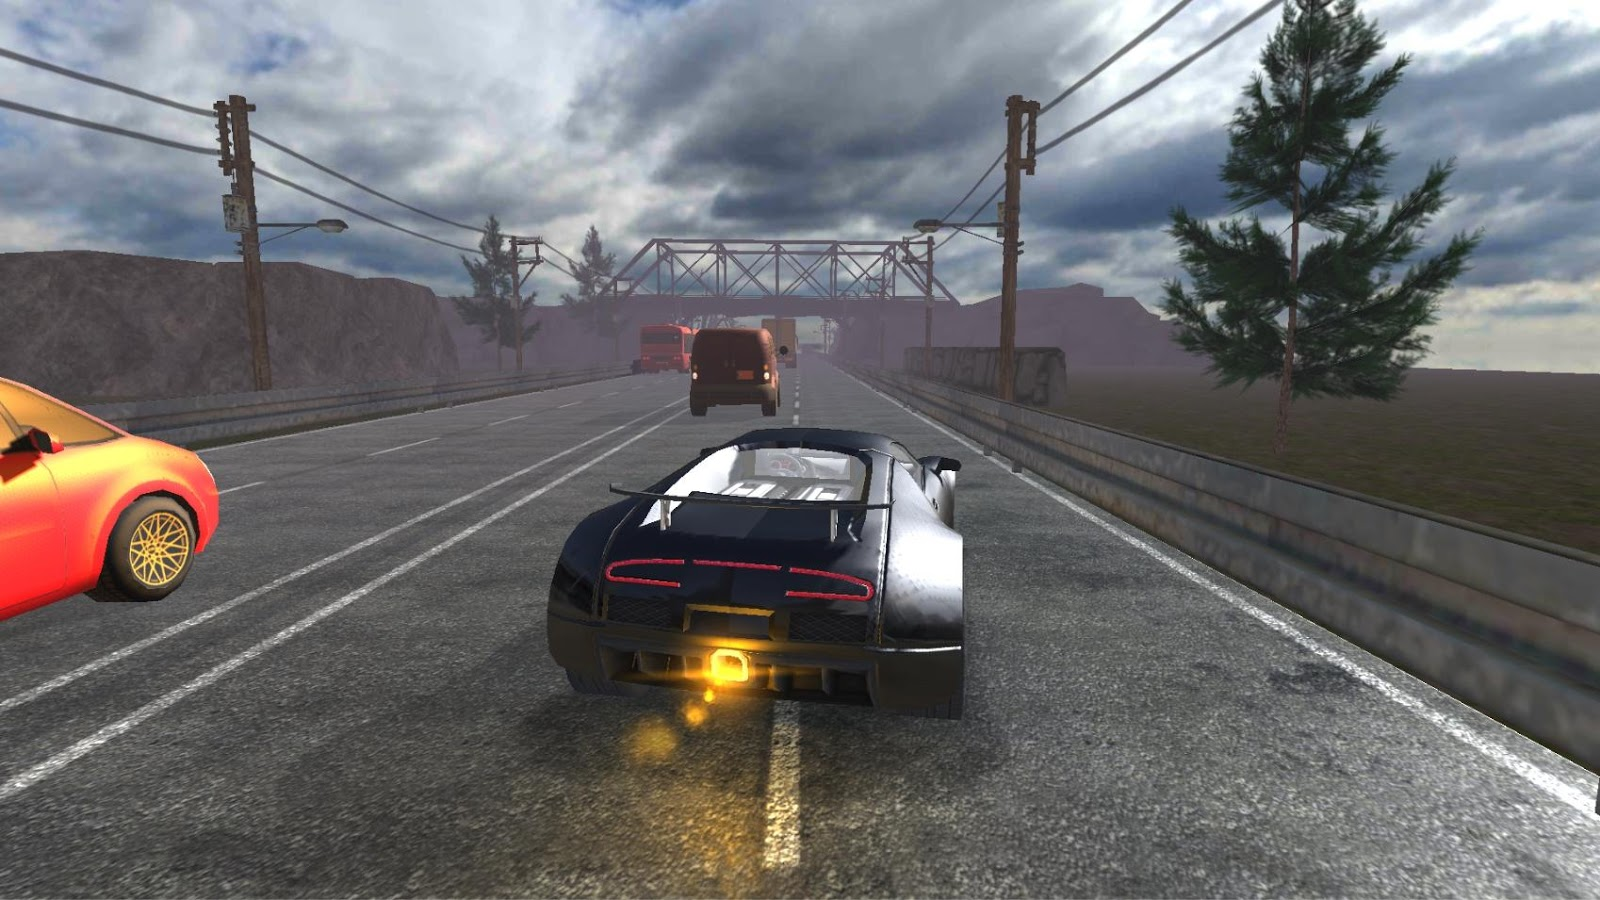 Free Race: Car Racing game Download and Install   Android